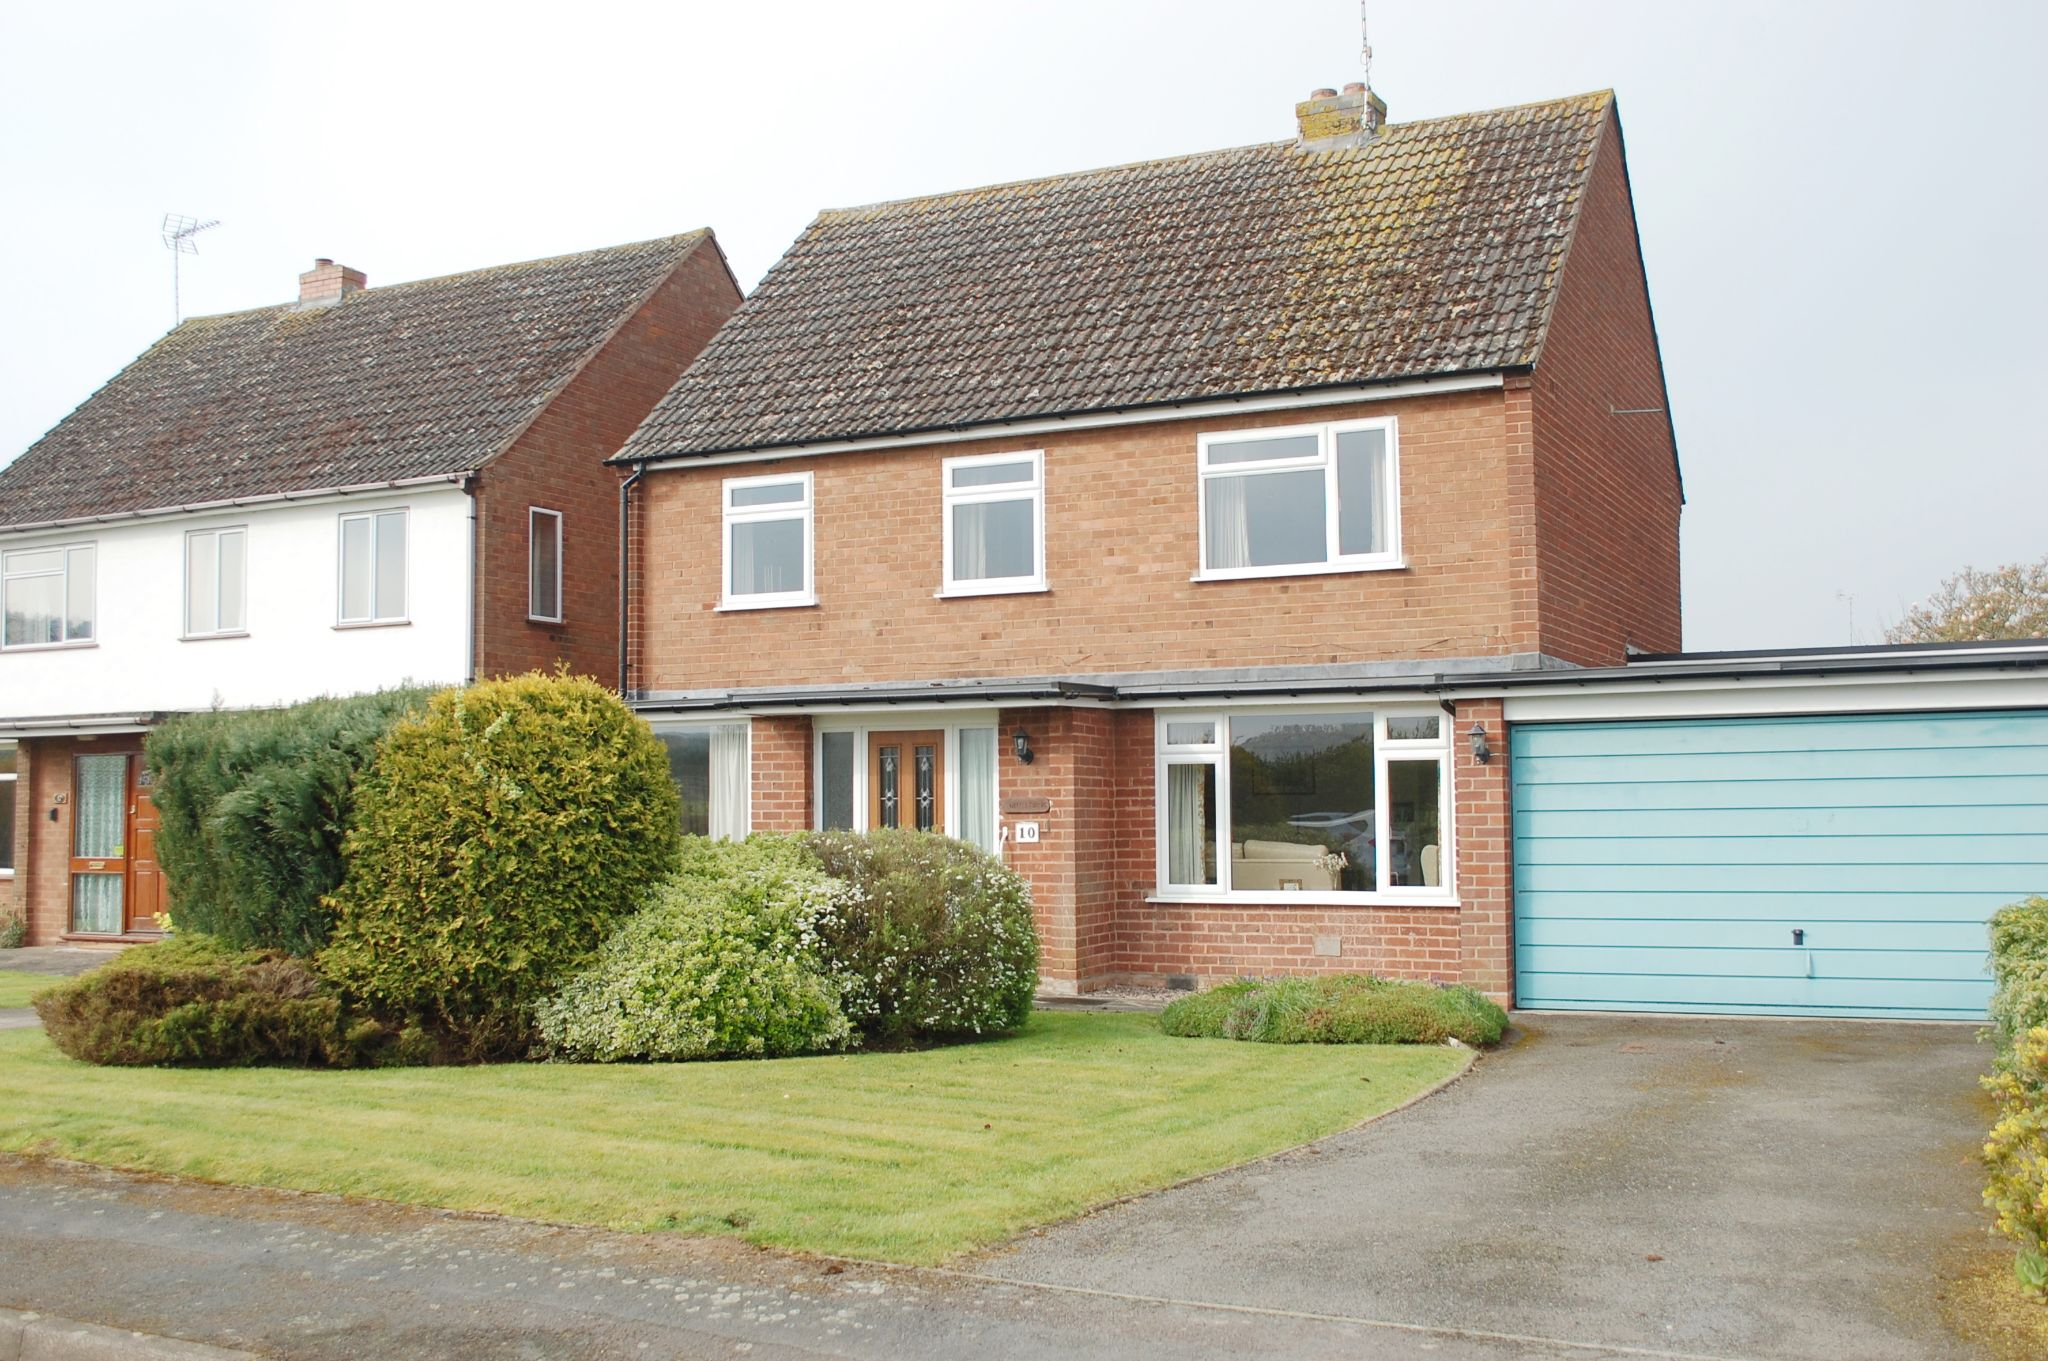 3 bedroom detached house For Sale in Oversley Green, Alcester - Property photograph